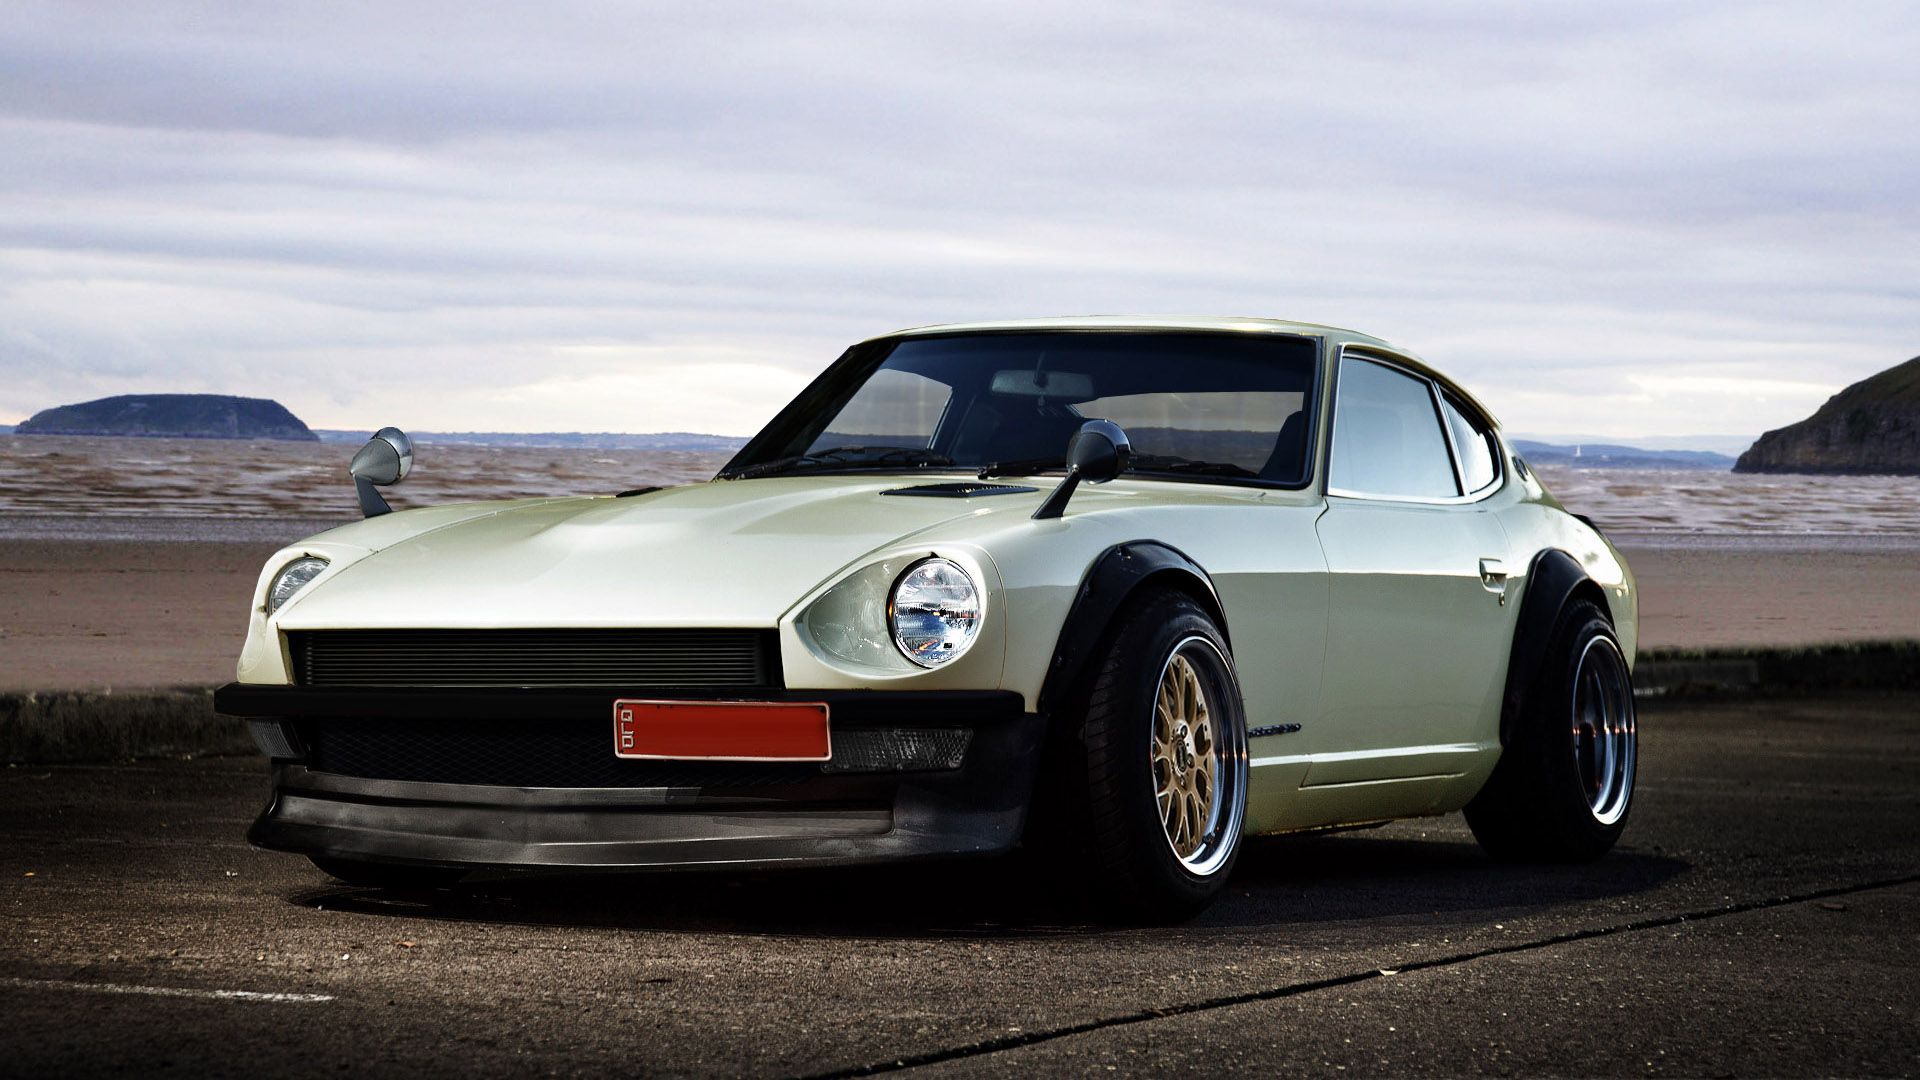 1920x1080 - Datsun Wallpapers 18